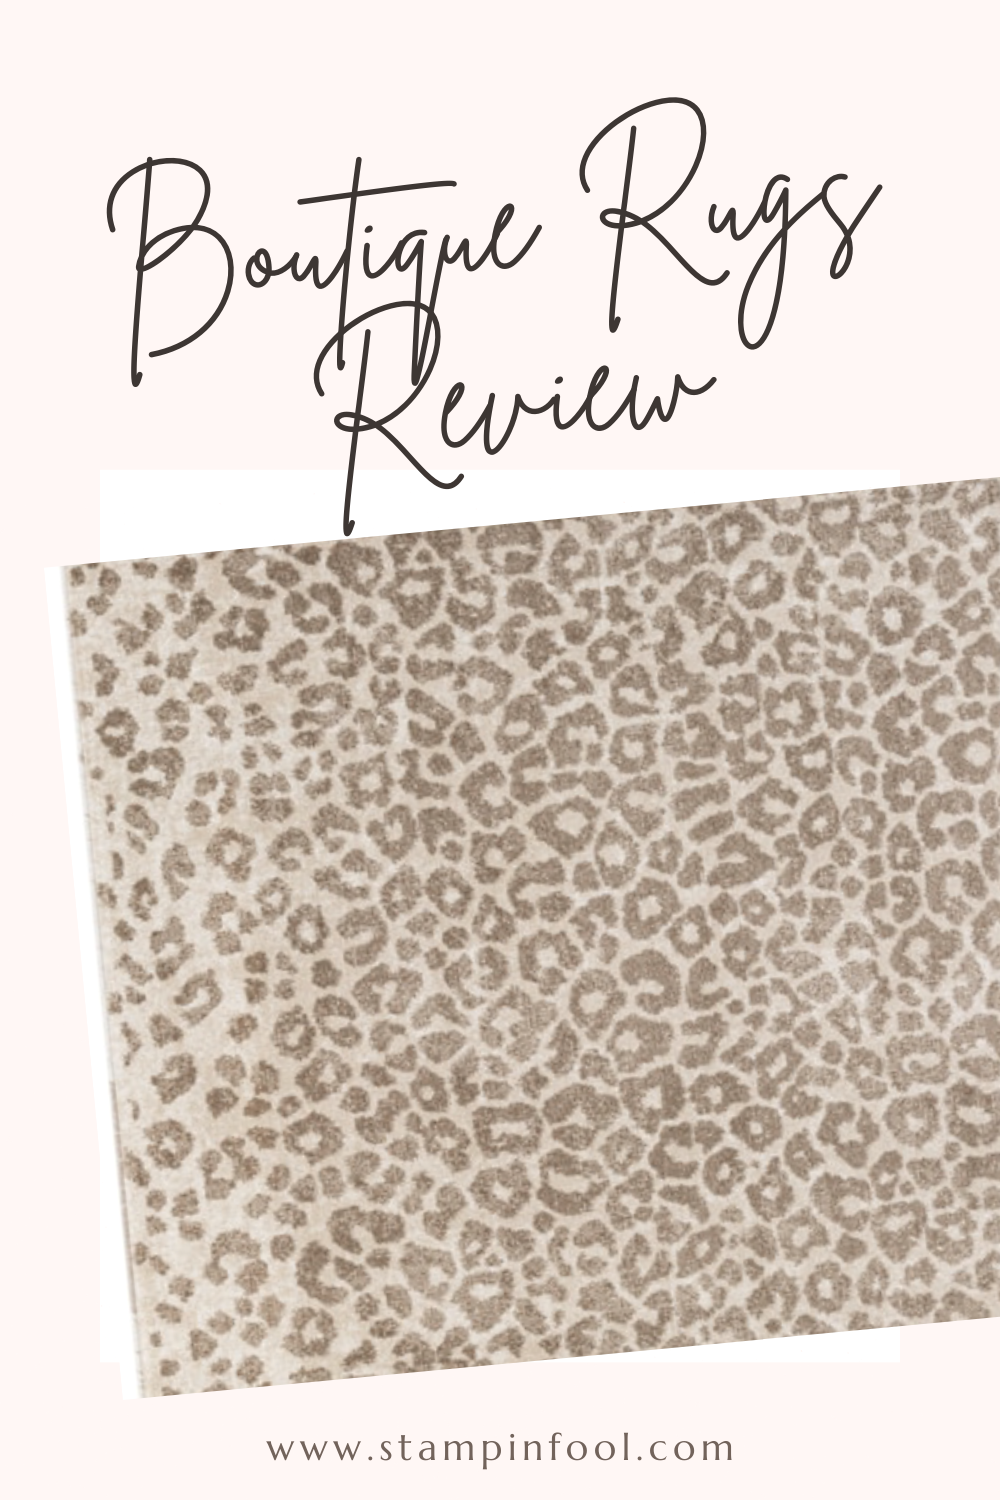 Boutique Rugs Review 2021: Online rug retailer, affordable rugs